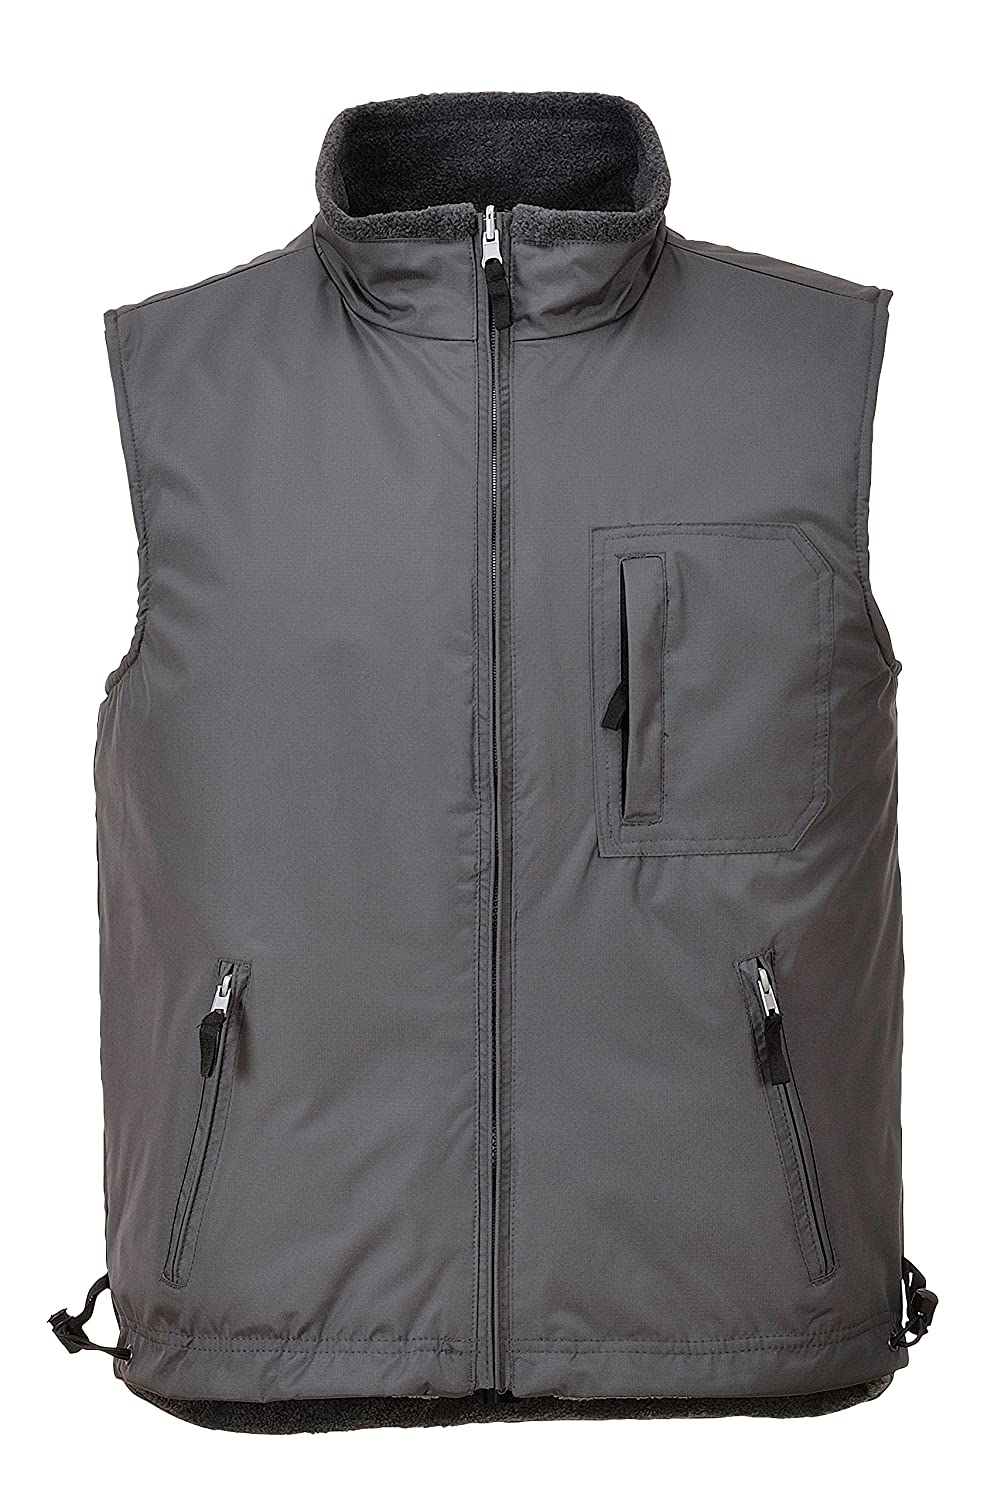 Portwest S418 - Reversibles Bodywarmer RS, color Gris, talla Small